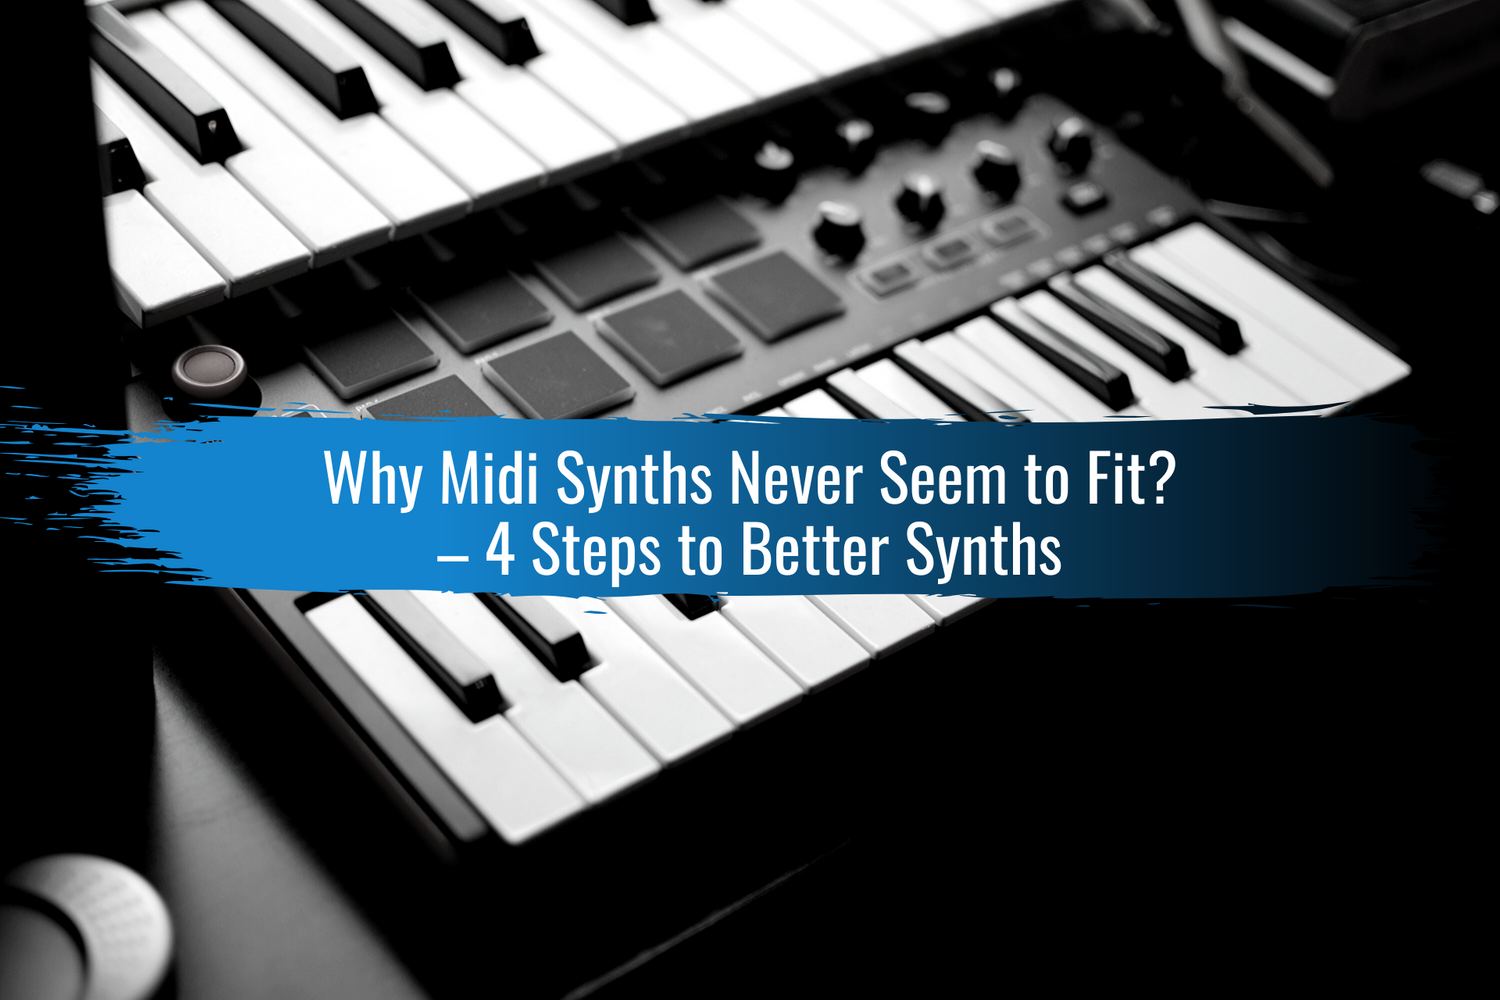 Why Midi Synths Never Seem to Fit? 4 Steps to Better Synths